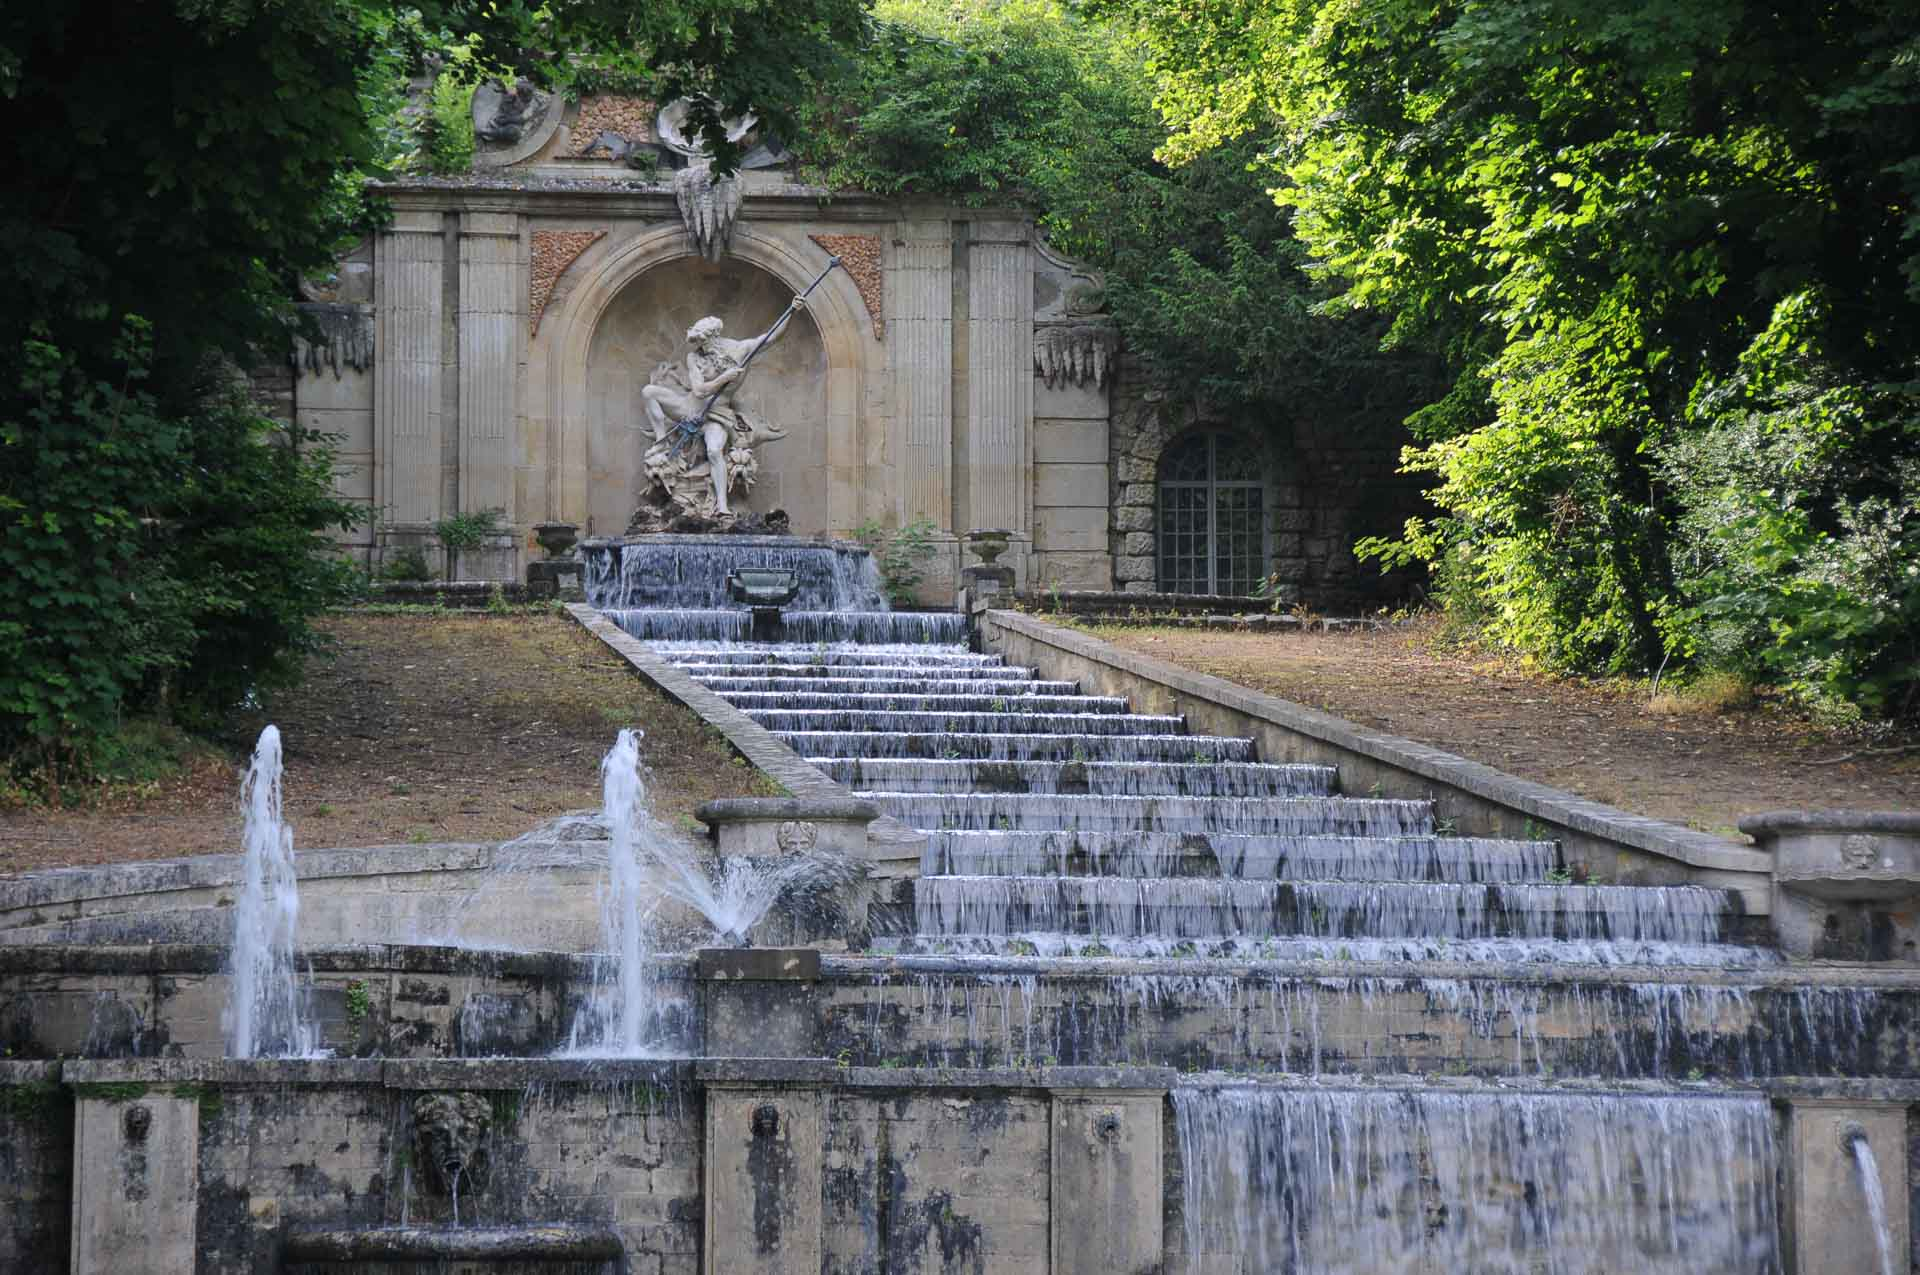 Chateau de Villette charming private residence offering accommodation luxury wine french breakfast swimming pool private park tennis court lush garden water cascade 15